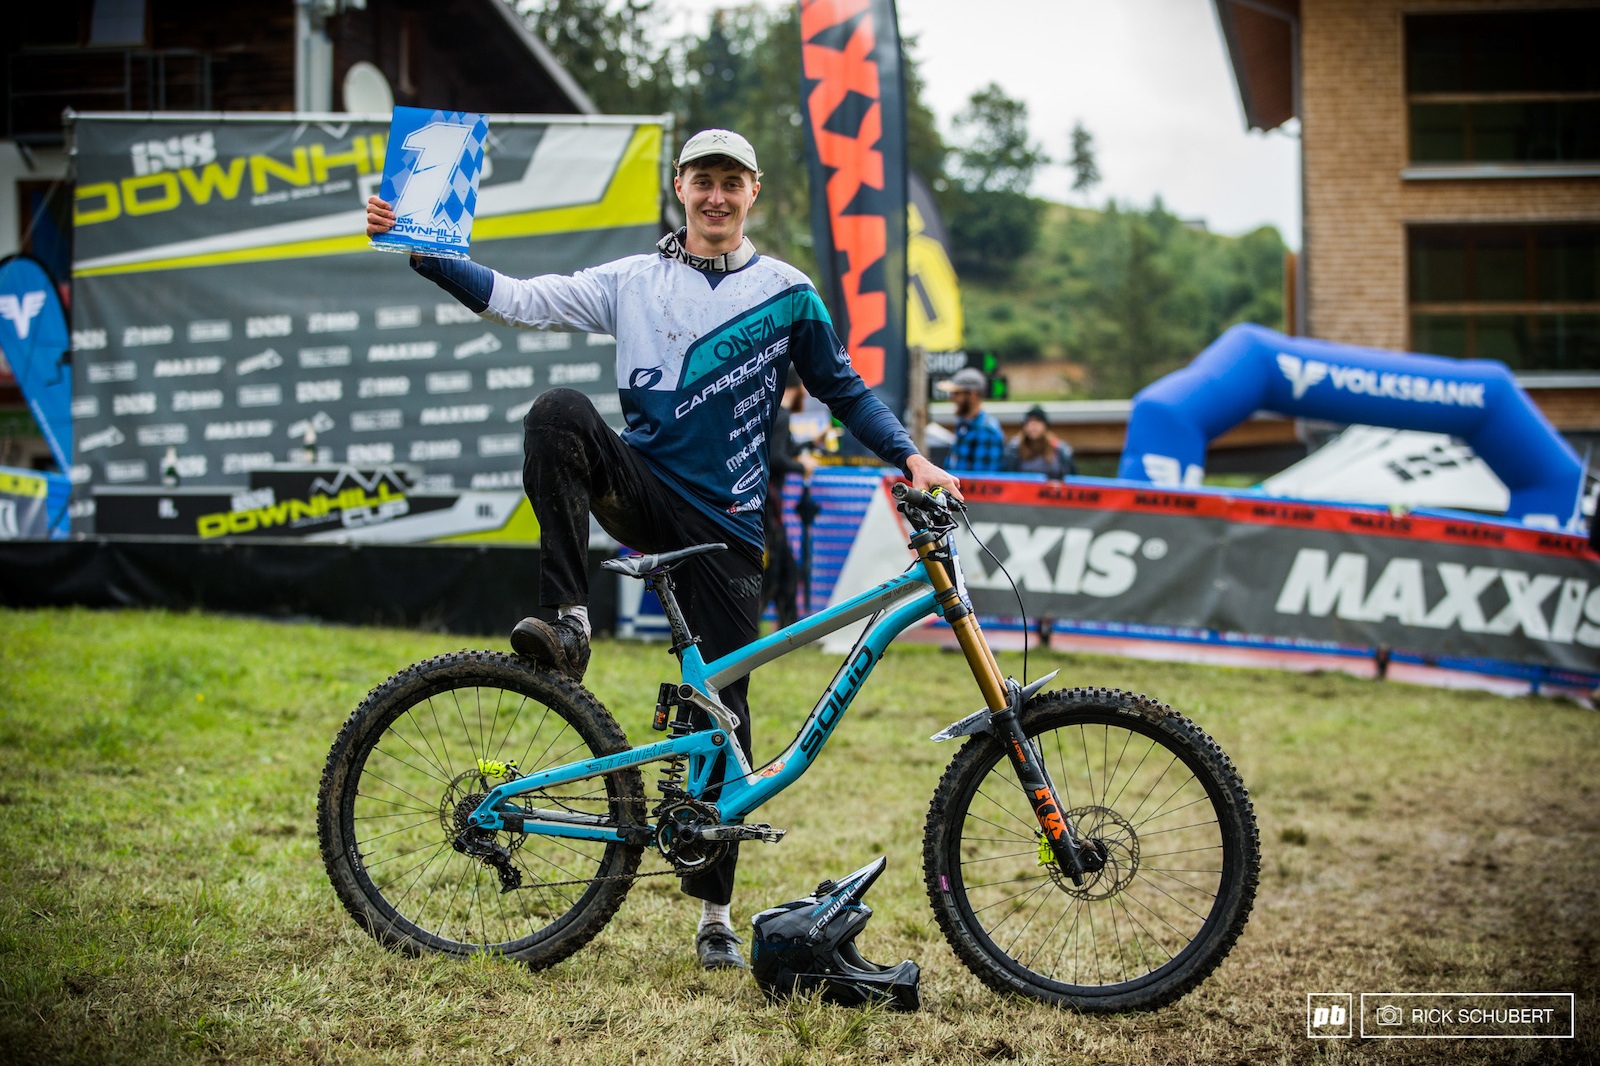 Joshua Barth is the new iXS European DH Cup champion